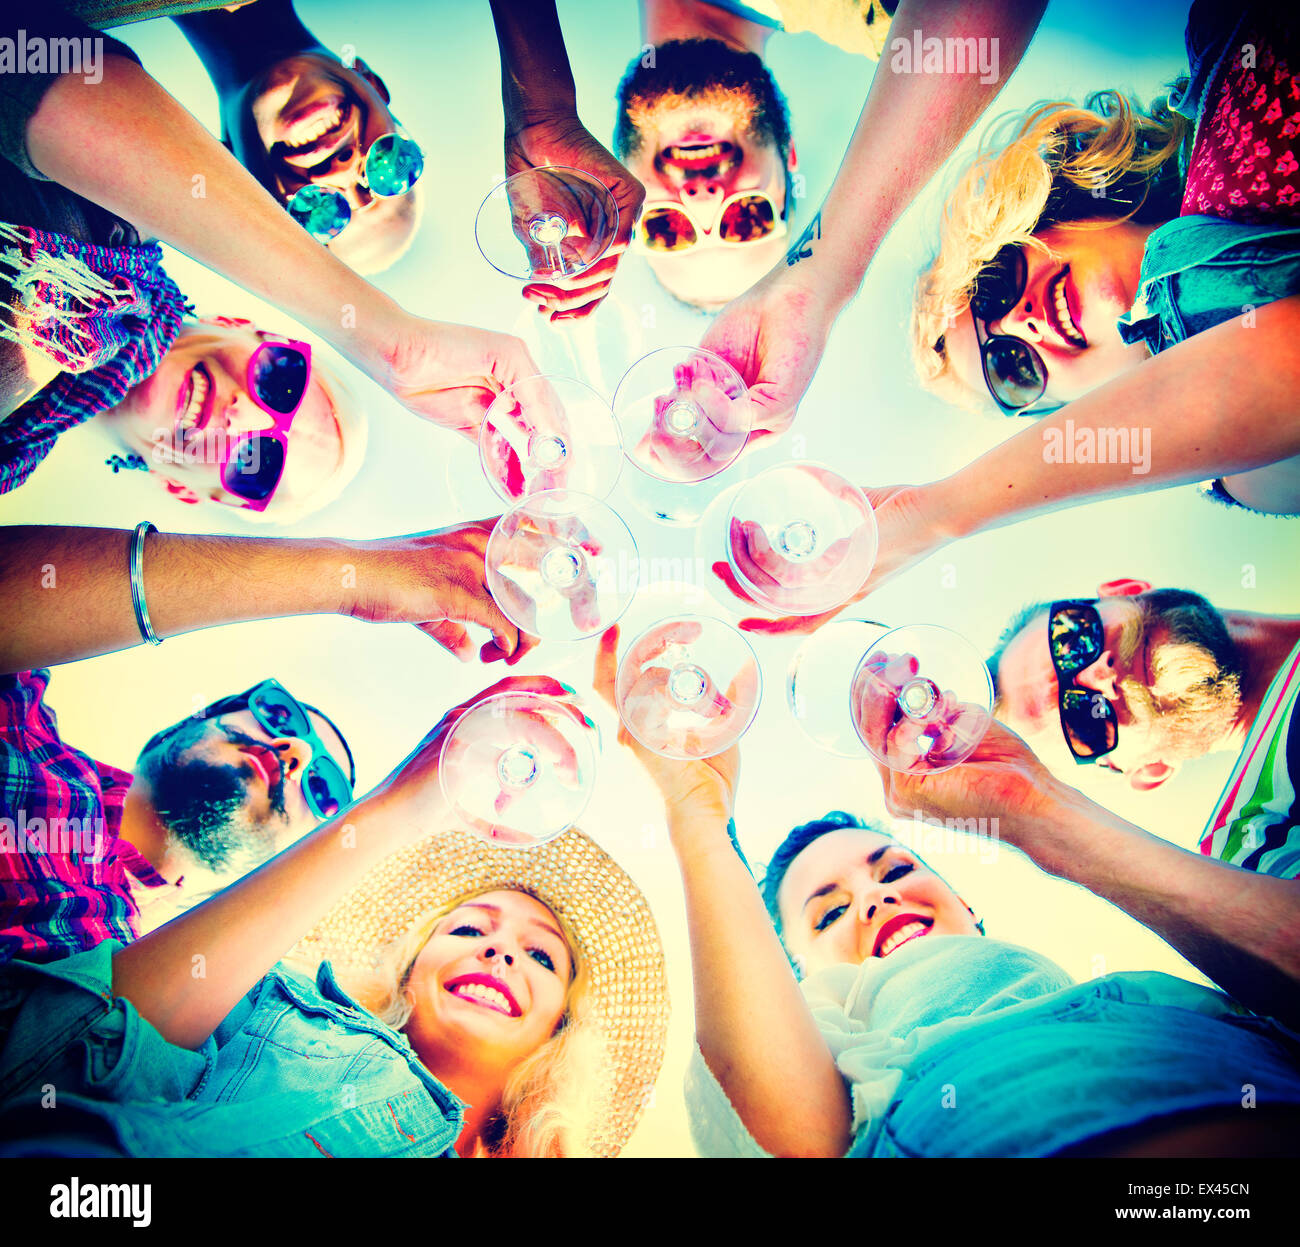 Beach Cheers Celebration Friendship Summer Fun Concept - Stock Image